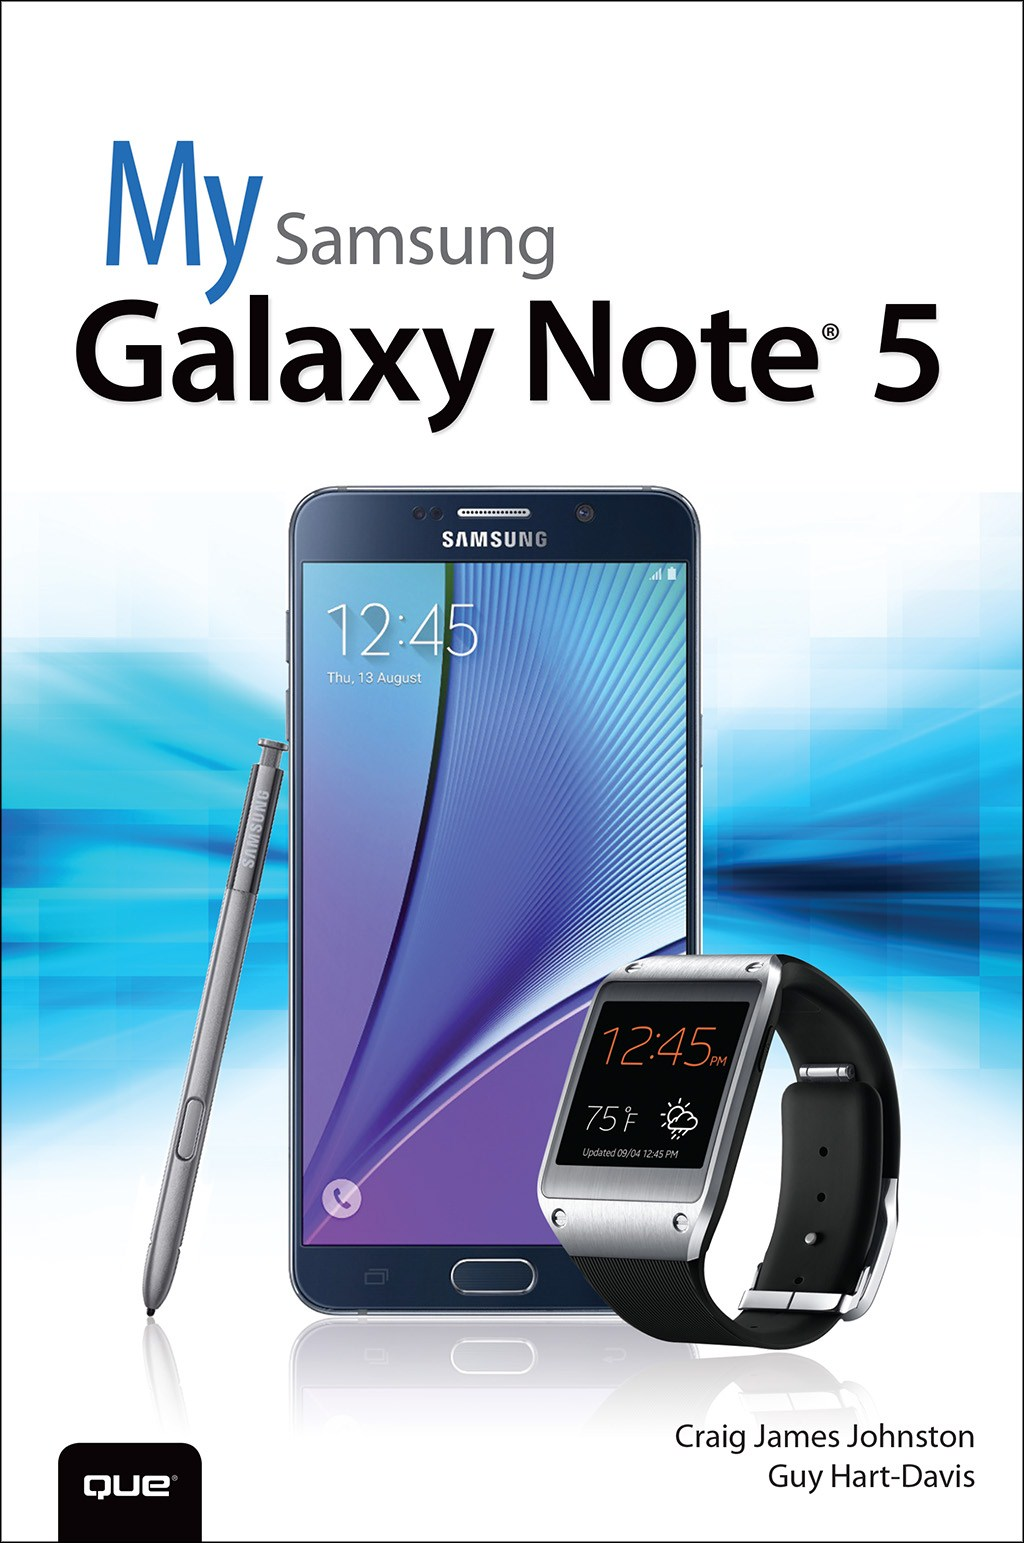 My Samsung Galaxy Note 5